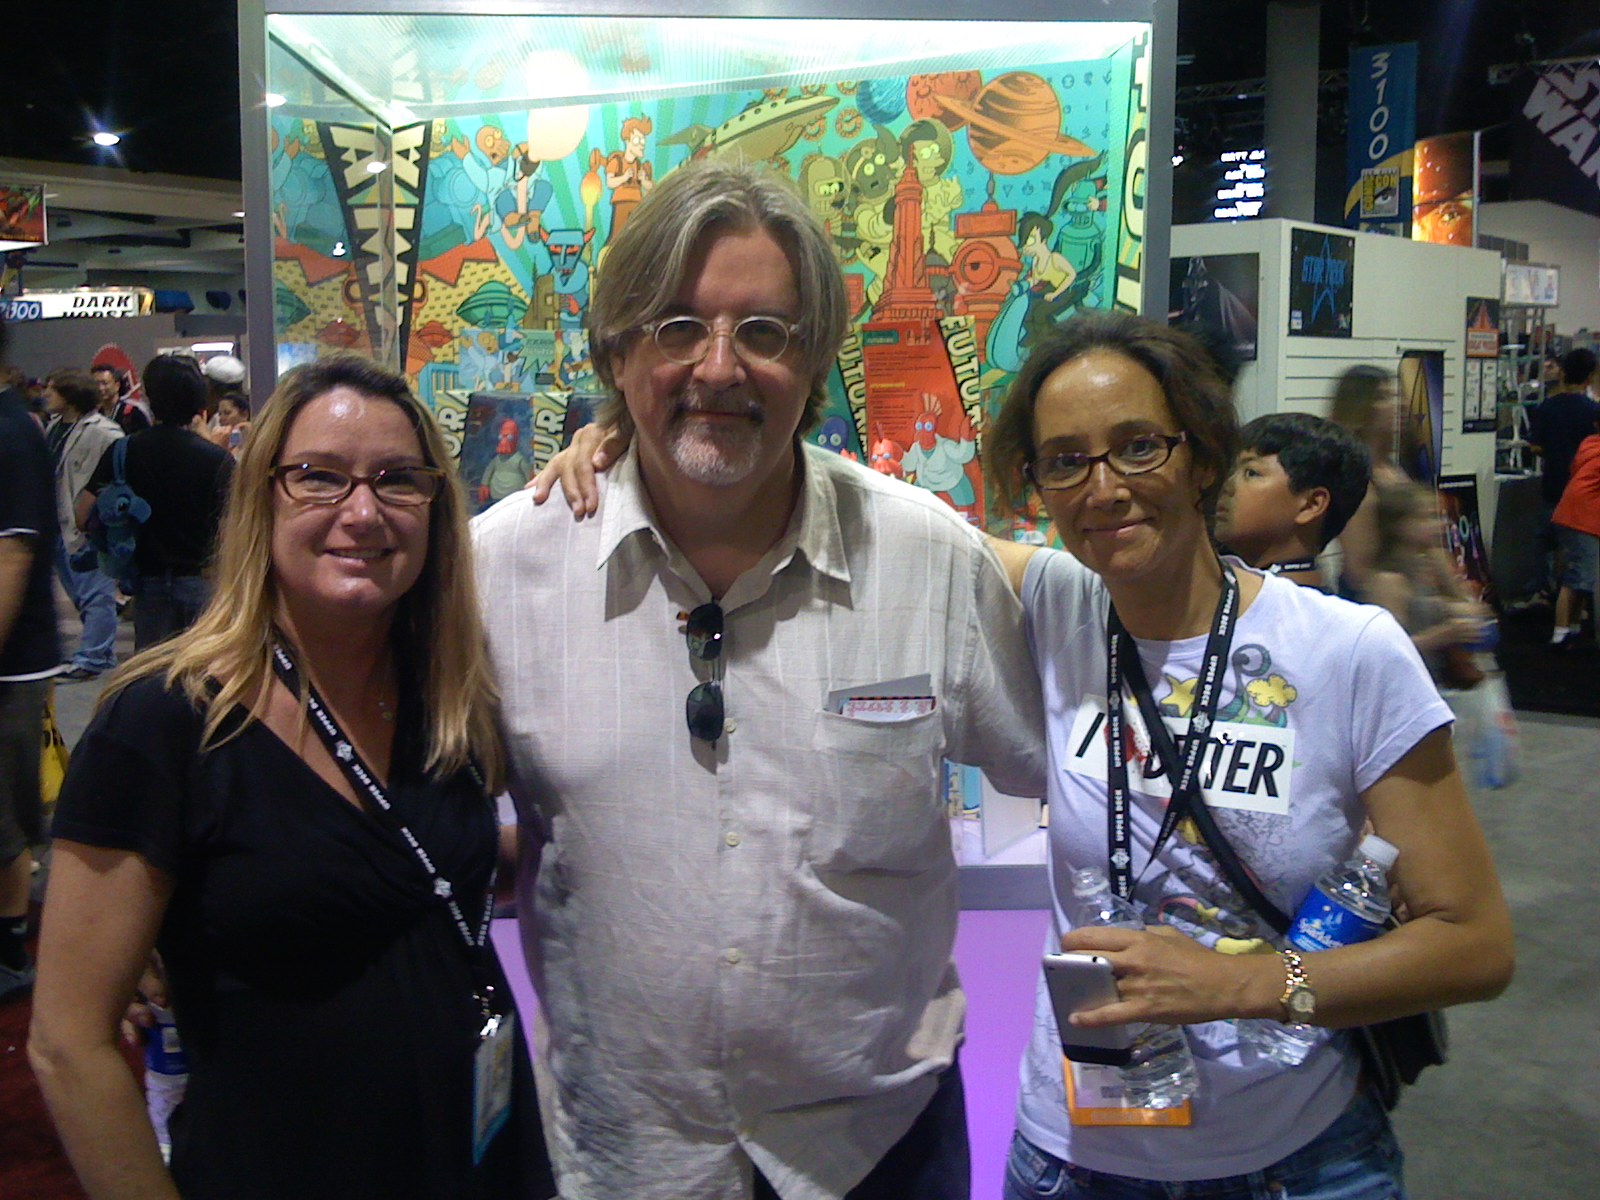 Gillian with friends, Matt Groening and Mili Smythe at COMICON